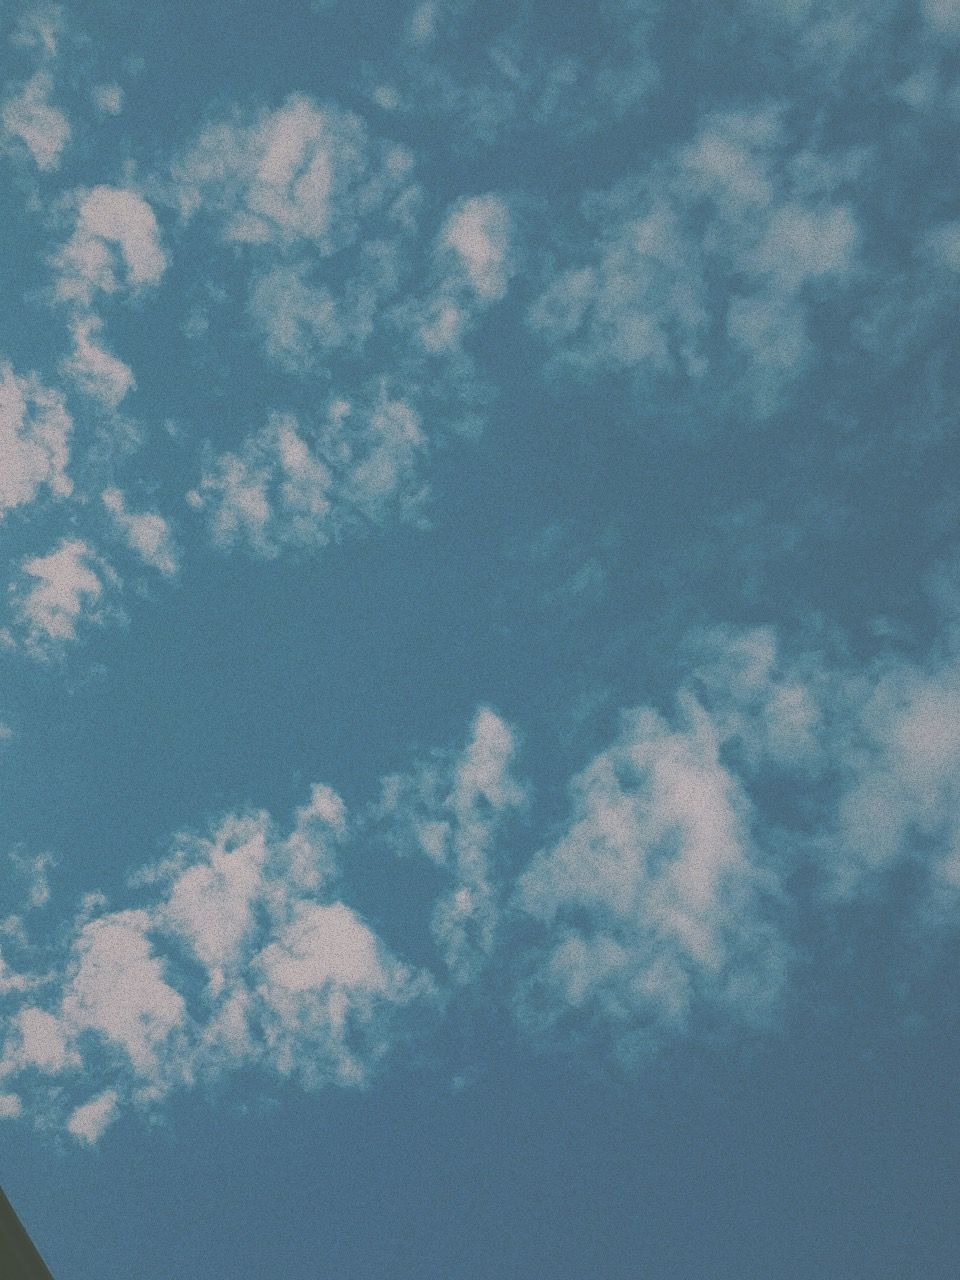 Sky Blue Tumblr Aestheticblue Aesthetic Blueaesthetic Wallpaper Wallpaperiphone Wall Collage Mood Board Wallpaper